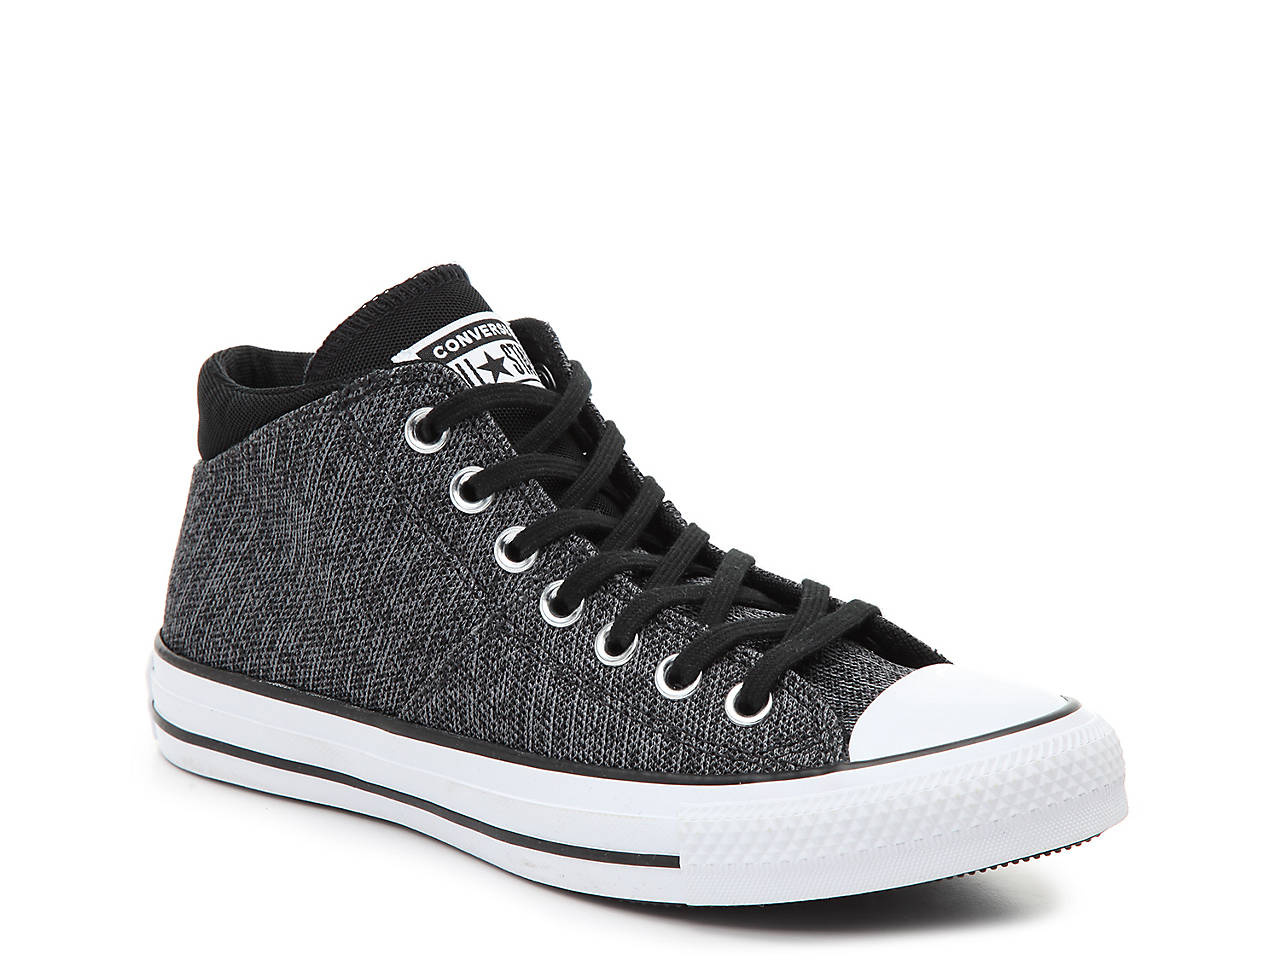 Converse Chuck Taylor All Star Madison Mid-Top Sneaker - Women s Women s  Shoes  14c964771